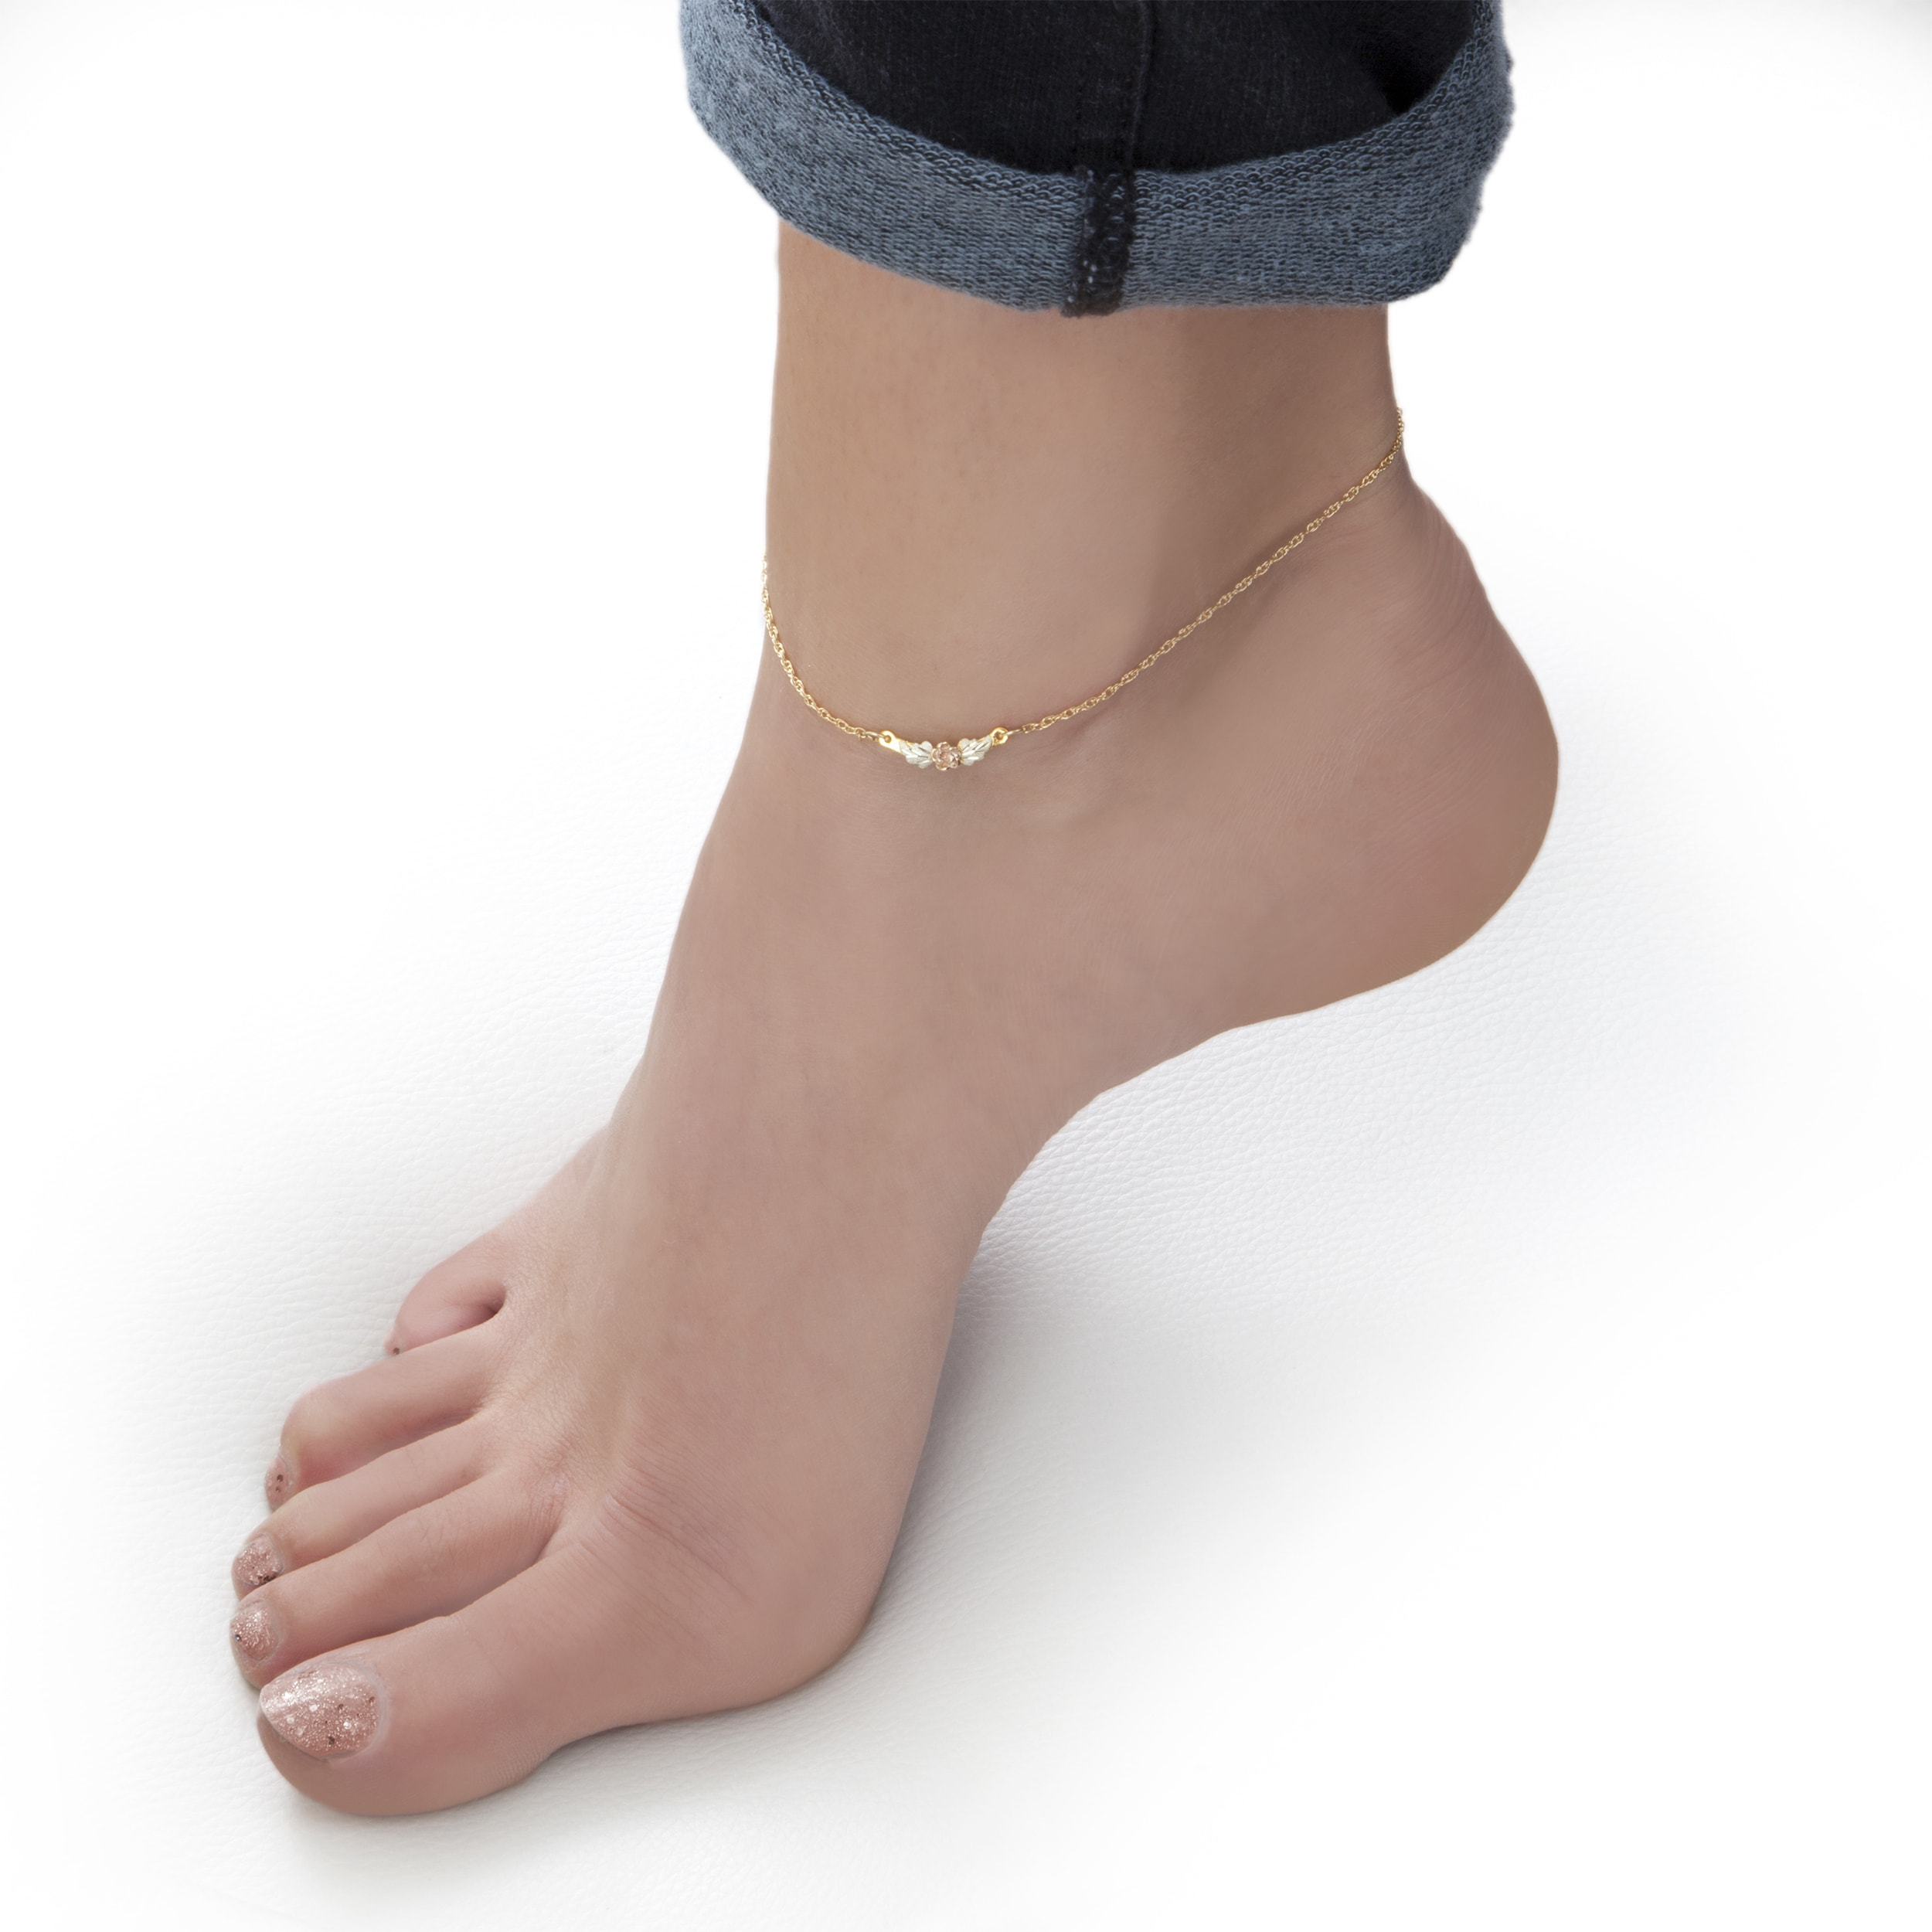 therapy com reduction solid ankles feet and relief amazon womens gold dp arthritis copper anklet magnetic elegant inflammation pain rose for